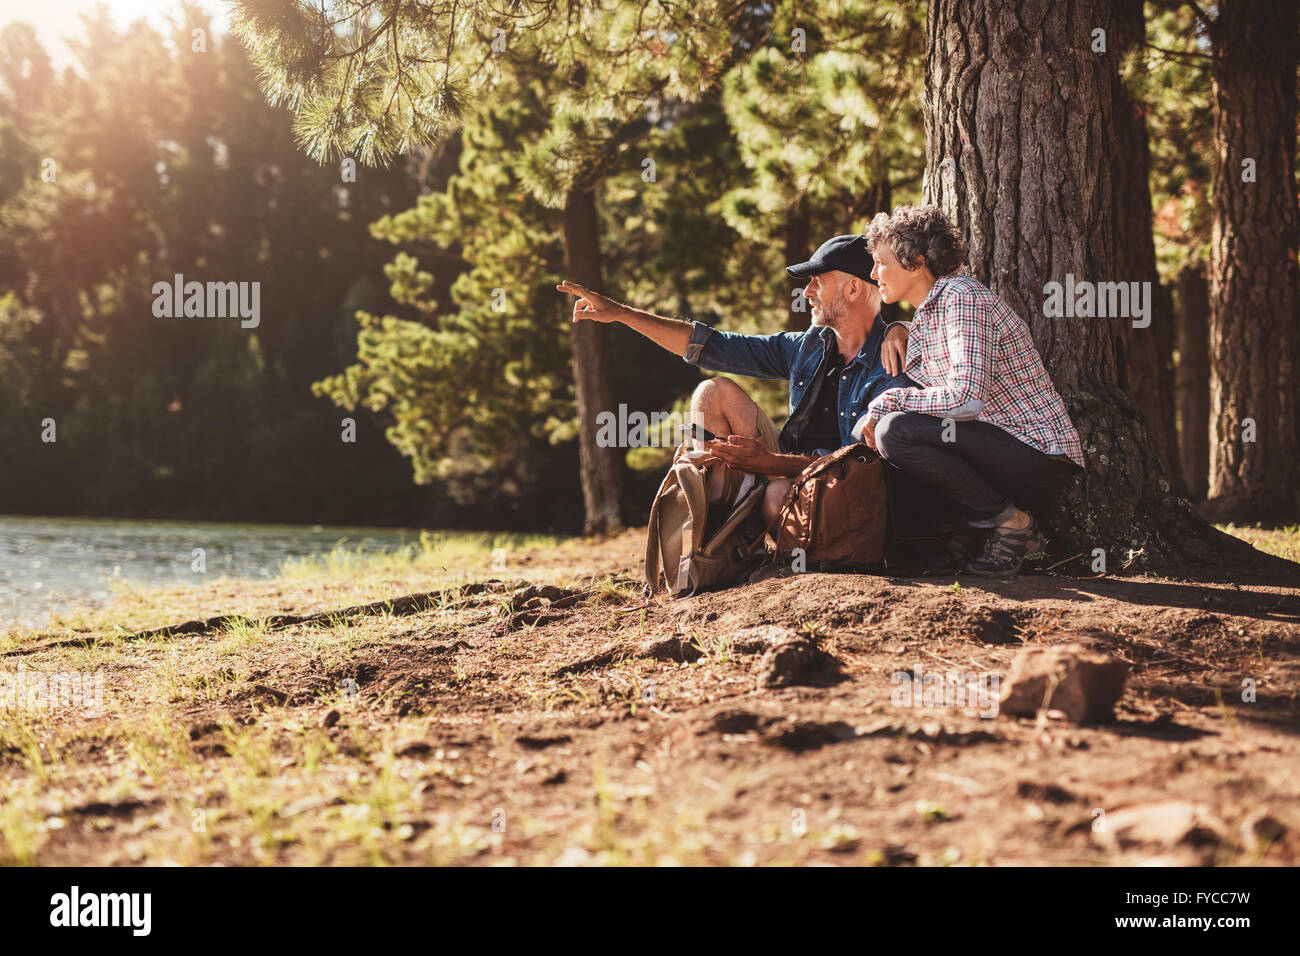 Mature couple sitting by a tree in forest with man showing something to woman. Senior man and woman on a hike in - Stock Image